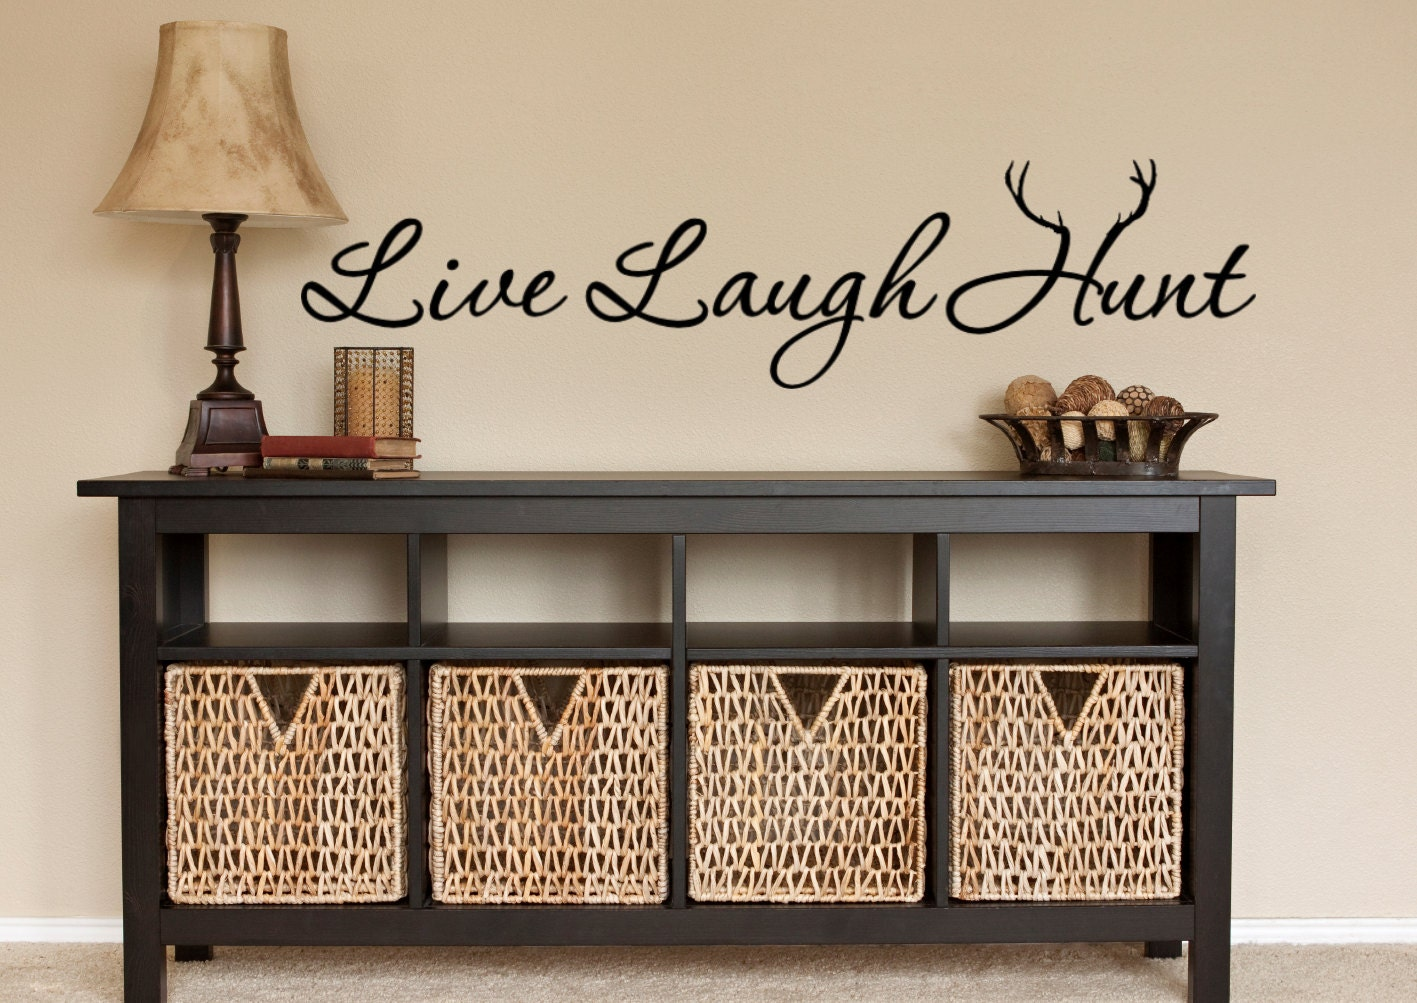 Live Laugh Love Wall Decor Hunting Wall Decal Hunt Hunting Decor Live Laugh Hunt